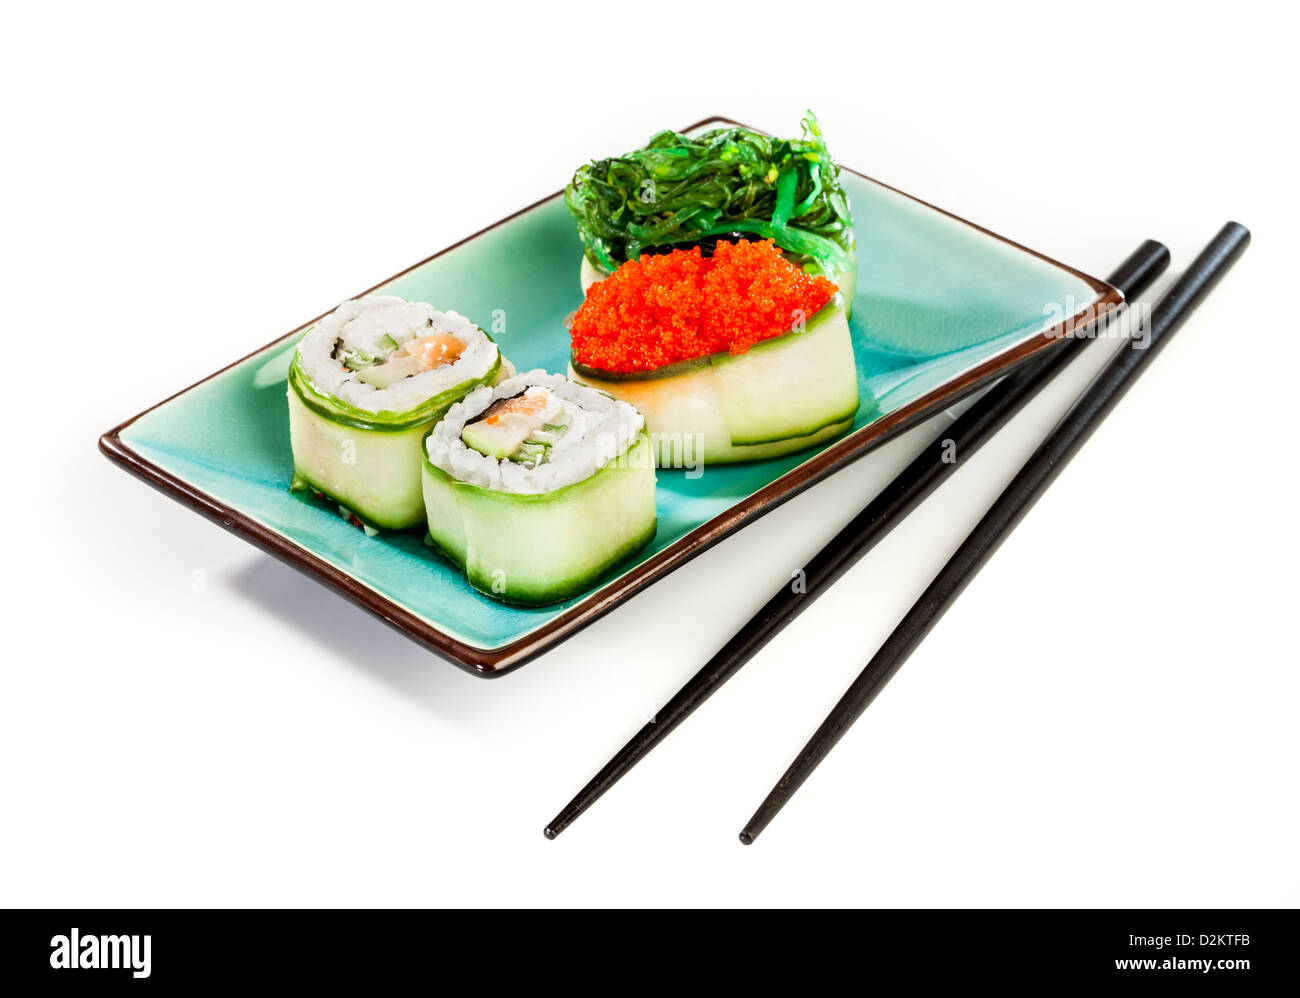 Sushi Roll on a white background - Stock Image